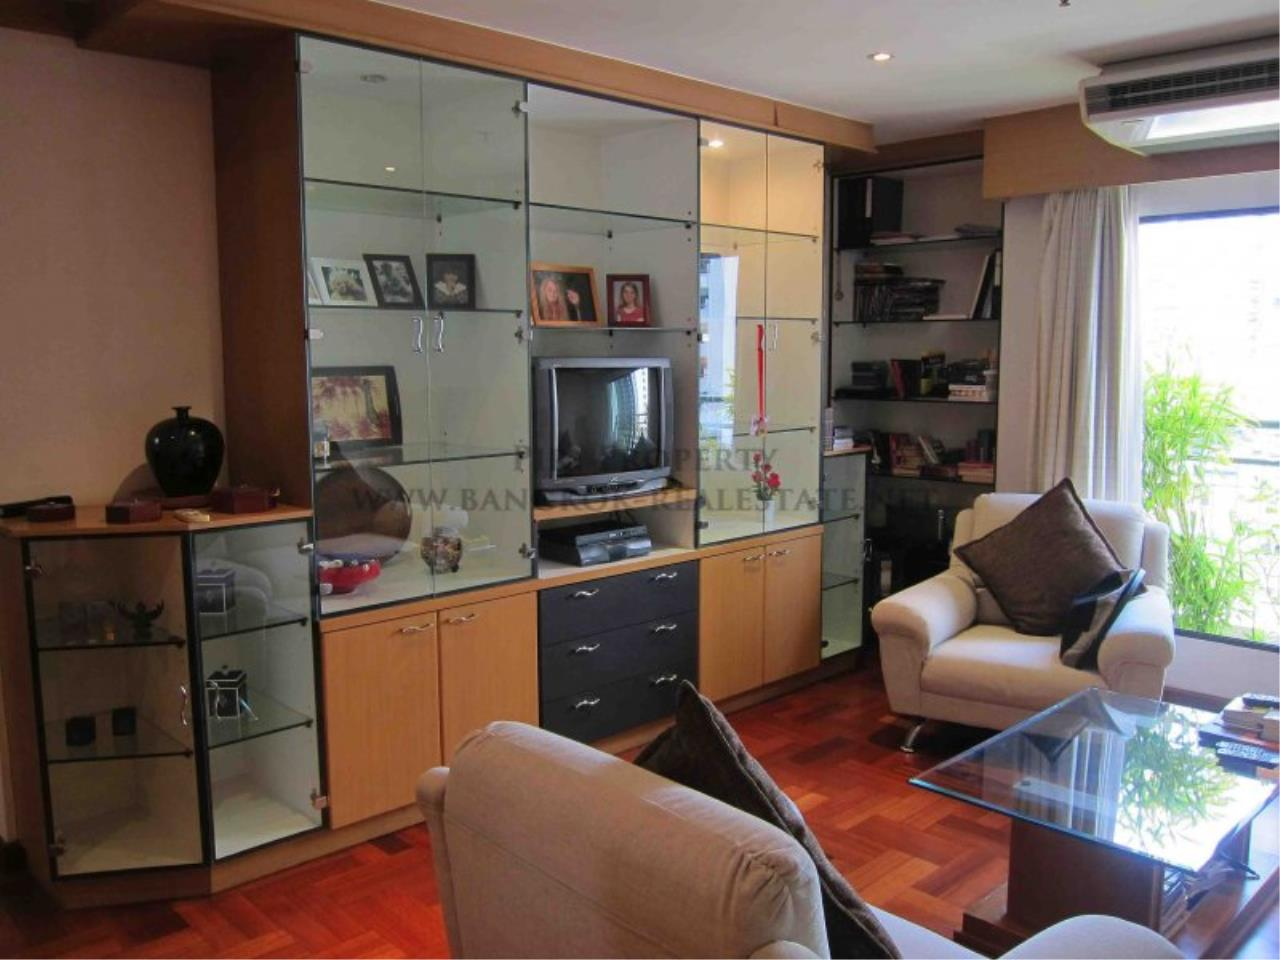 Piri Property Agency's Liberty Park 2 Condominium - Fully furnished 2 Bedroom Condo for Rent 2